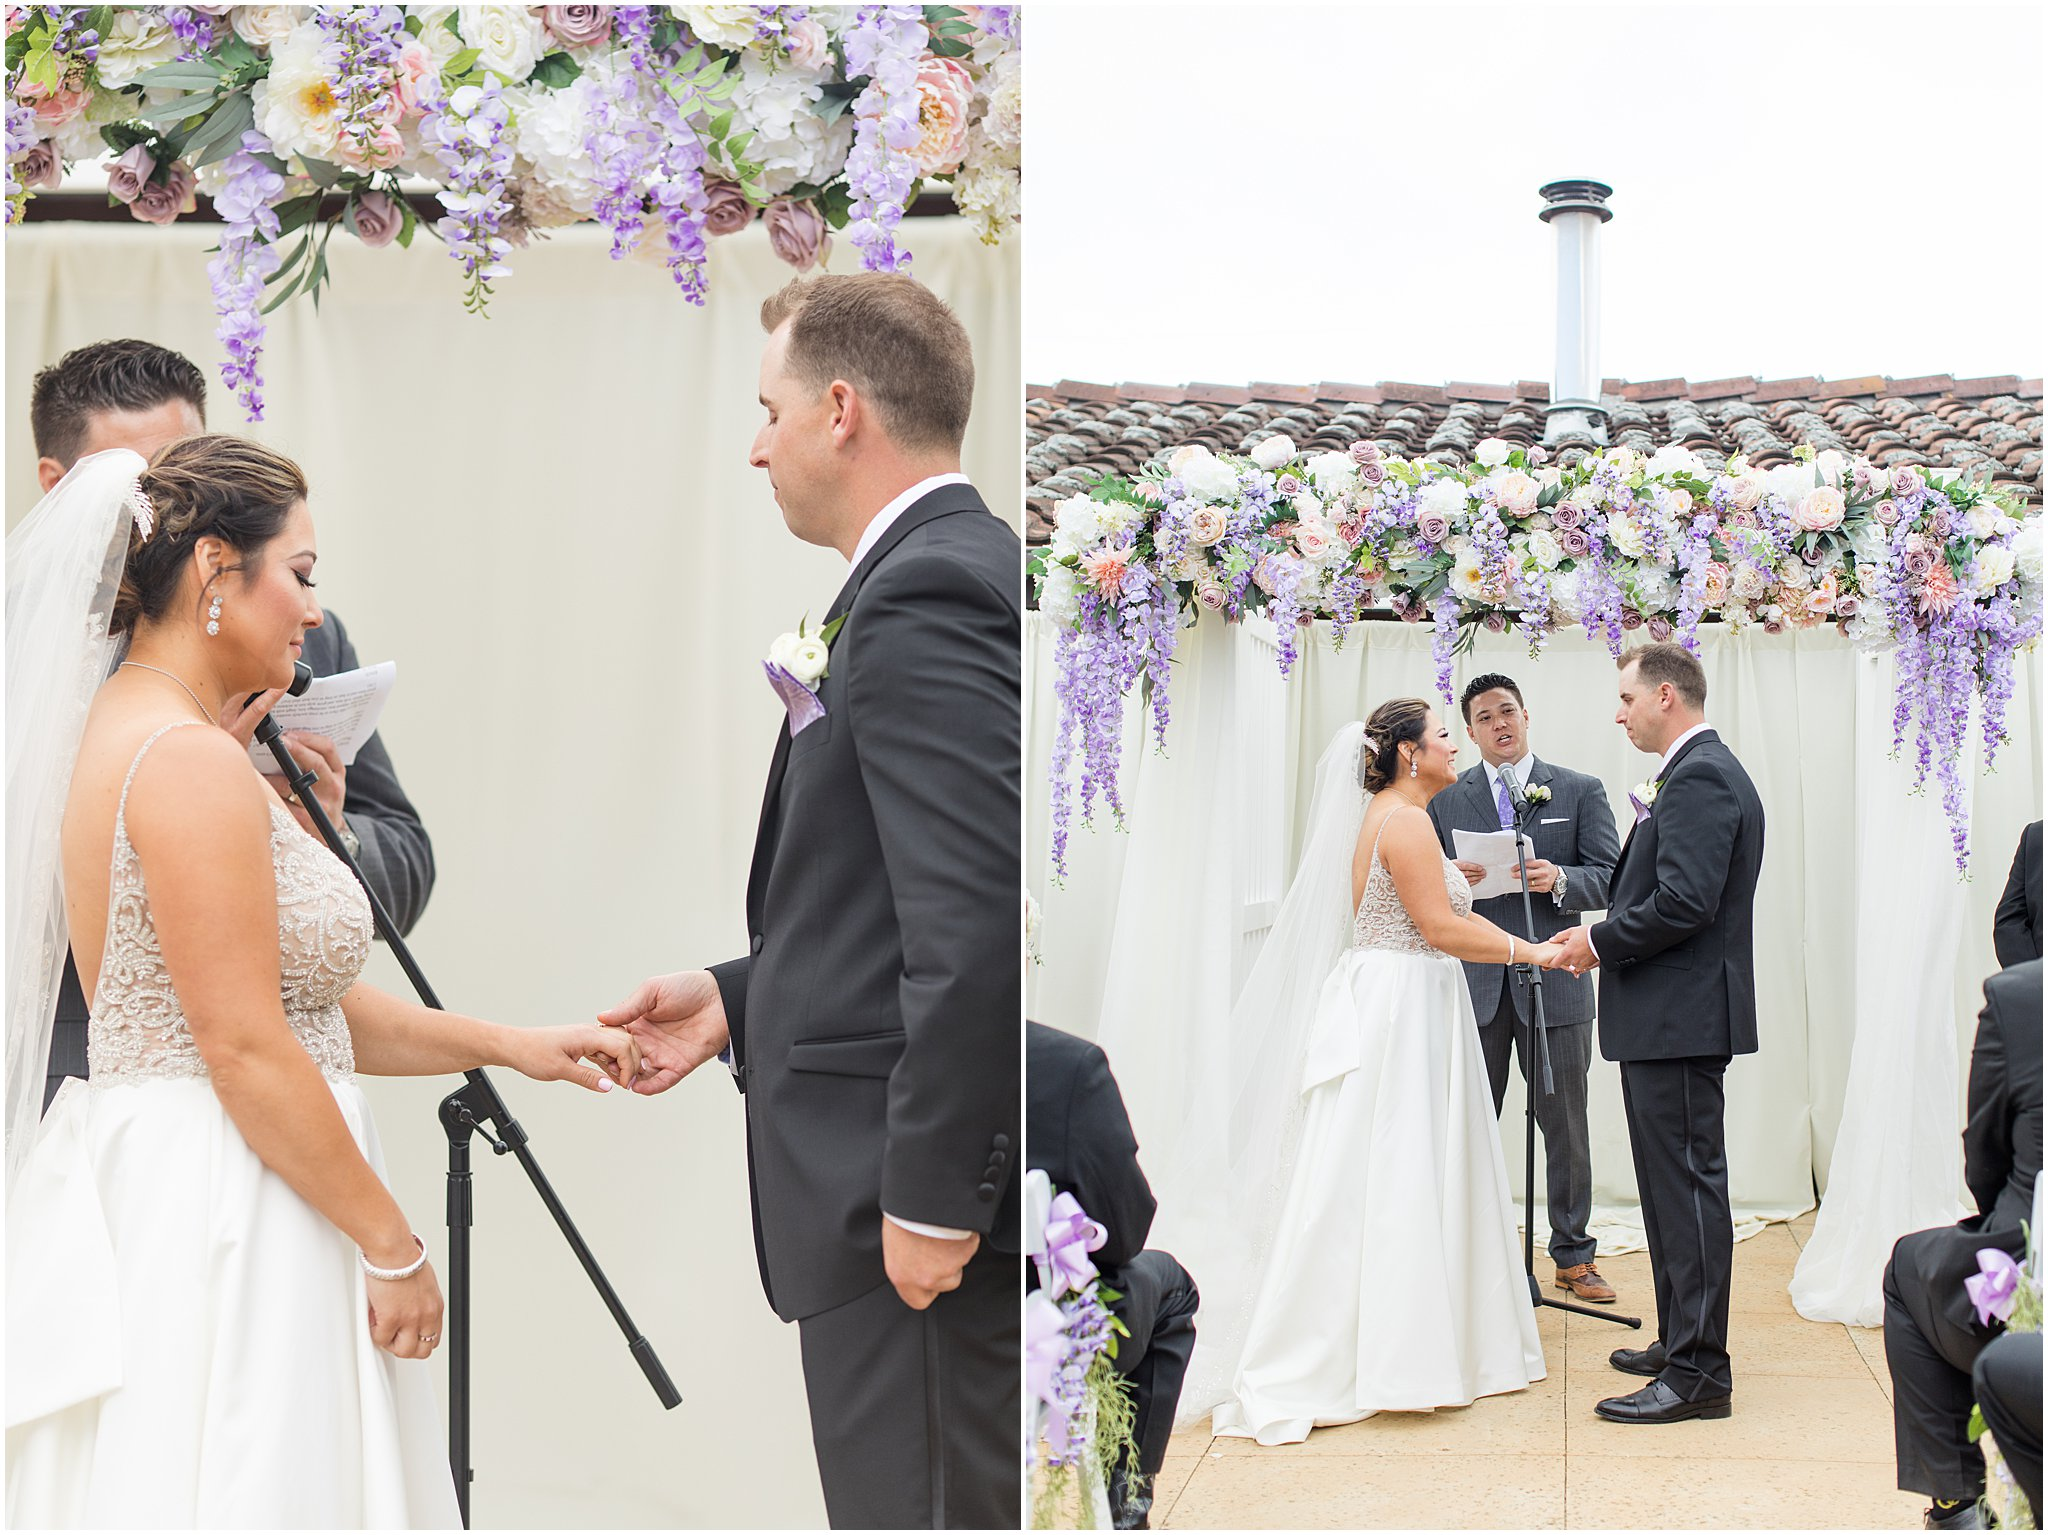 2019 wedding san juan bautista hacienda de leal vineyards bay area wedding photographer_0047.jpg